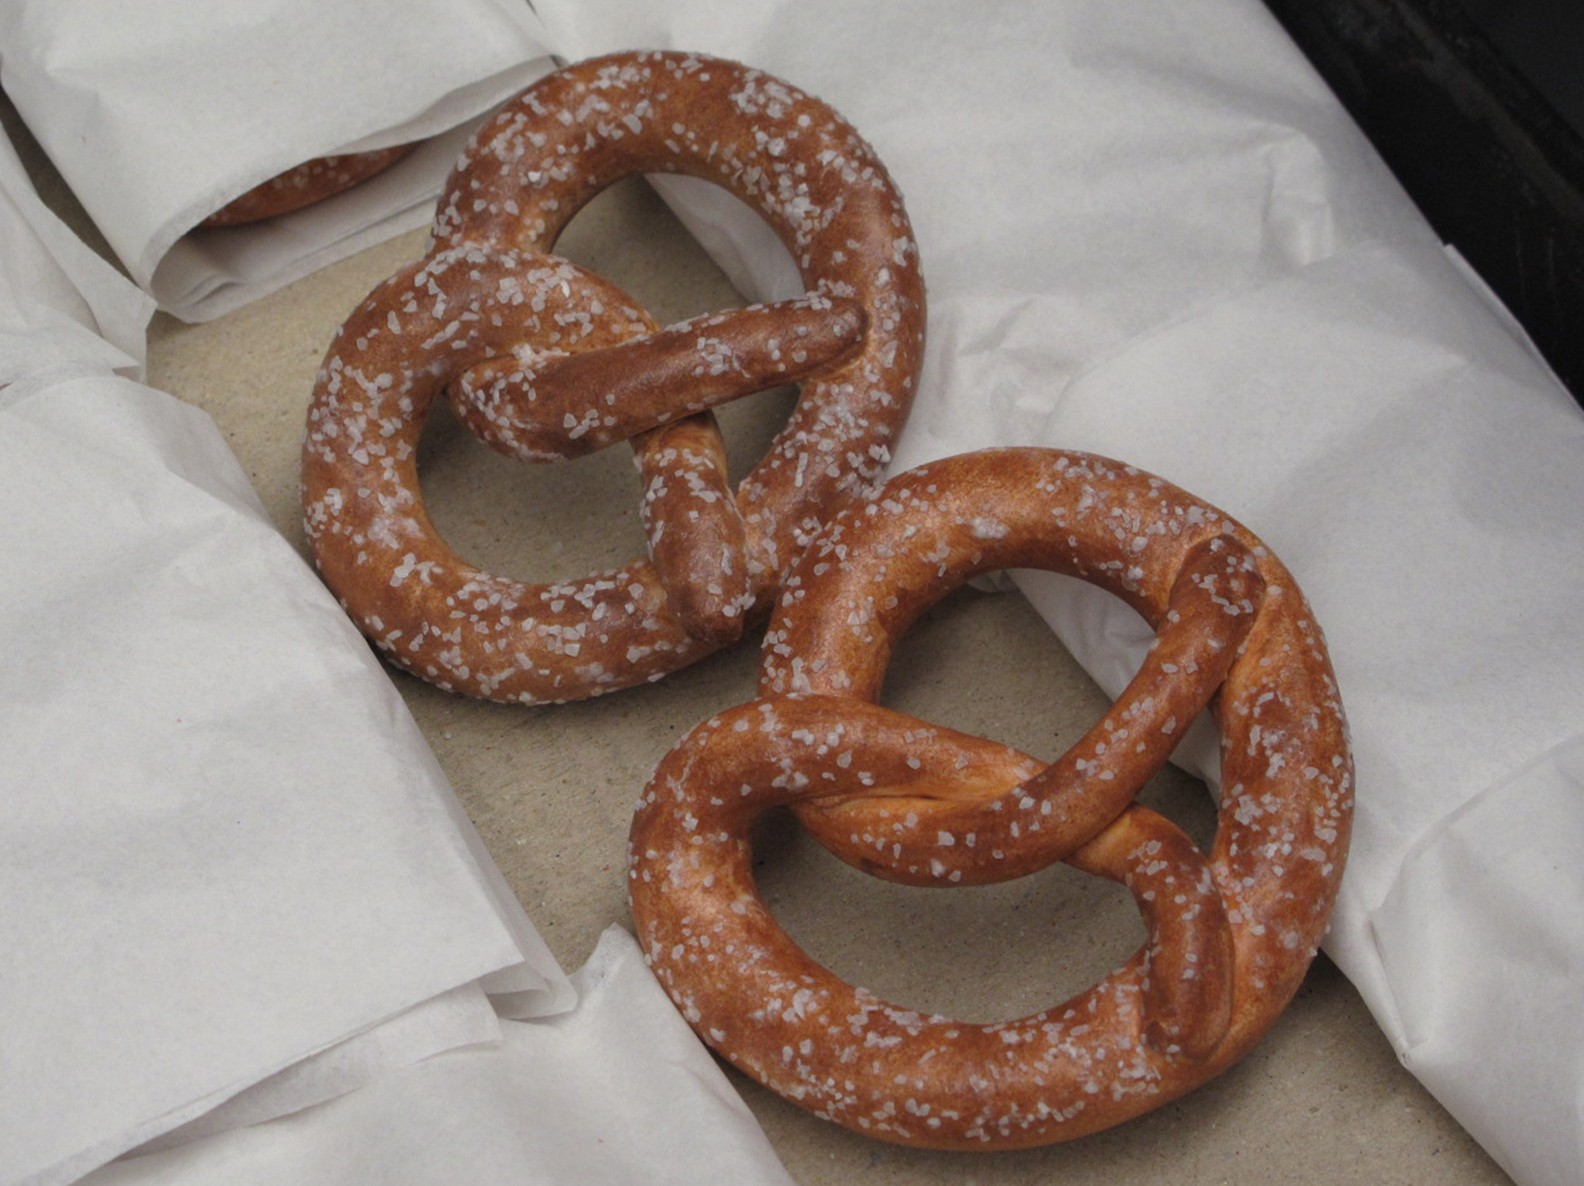 Two German style pretzels